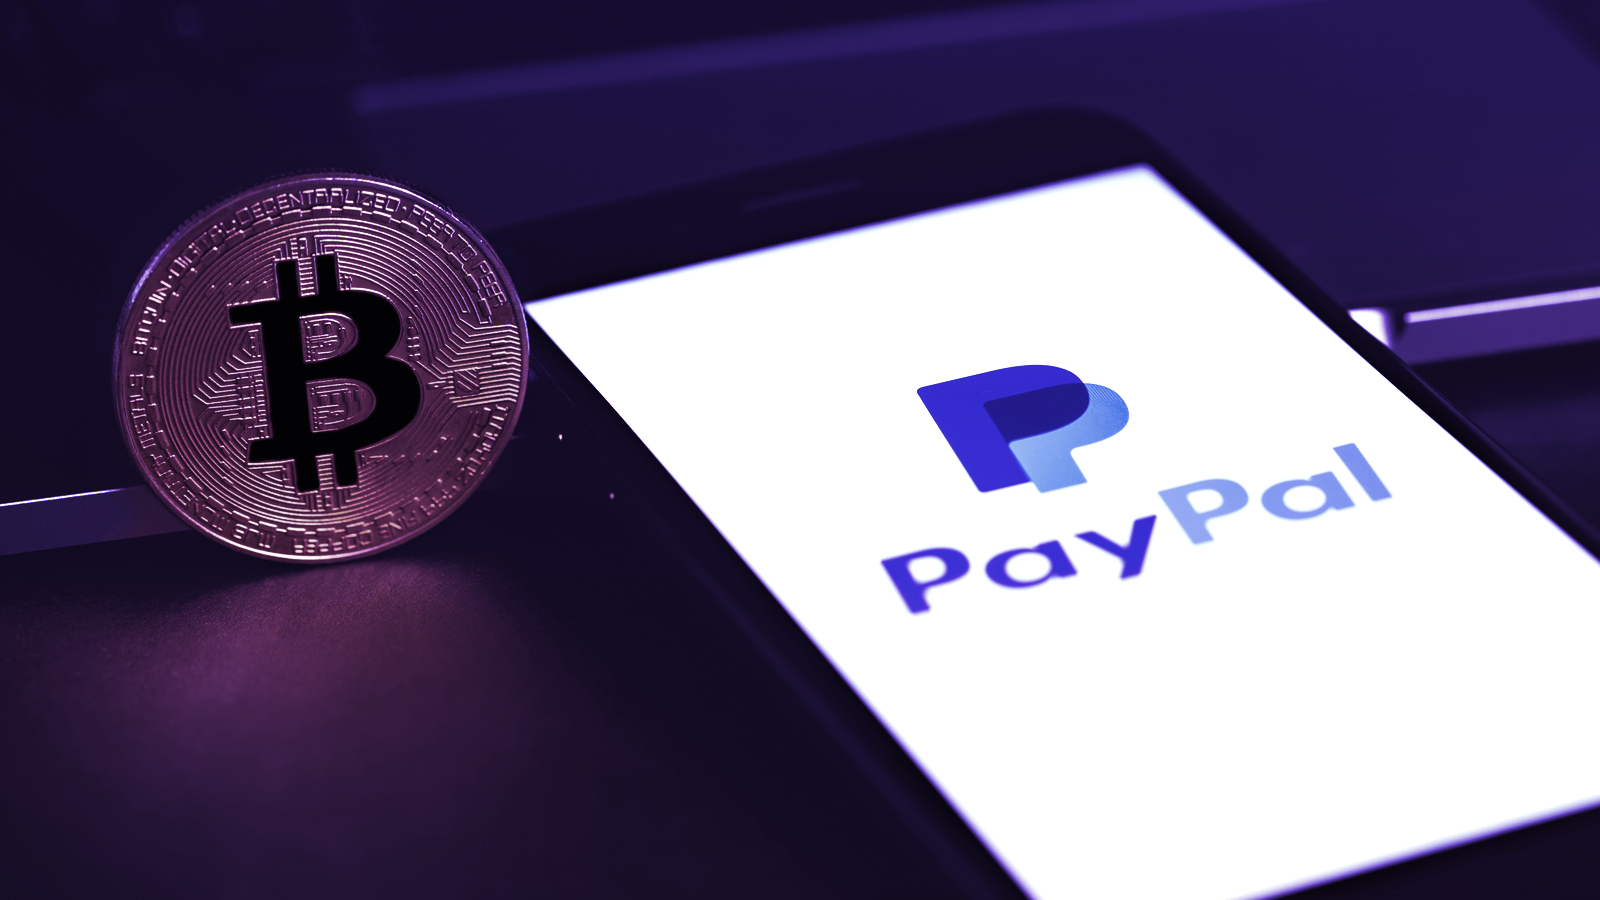 PayPal Ups Limits on Bitcoin Purchases to $100,000 Per Week